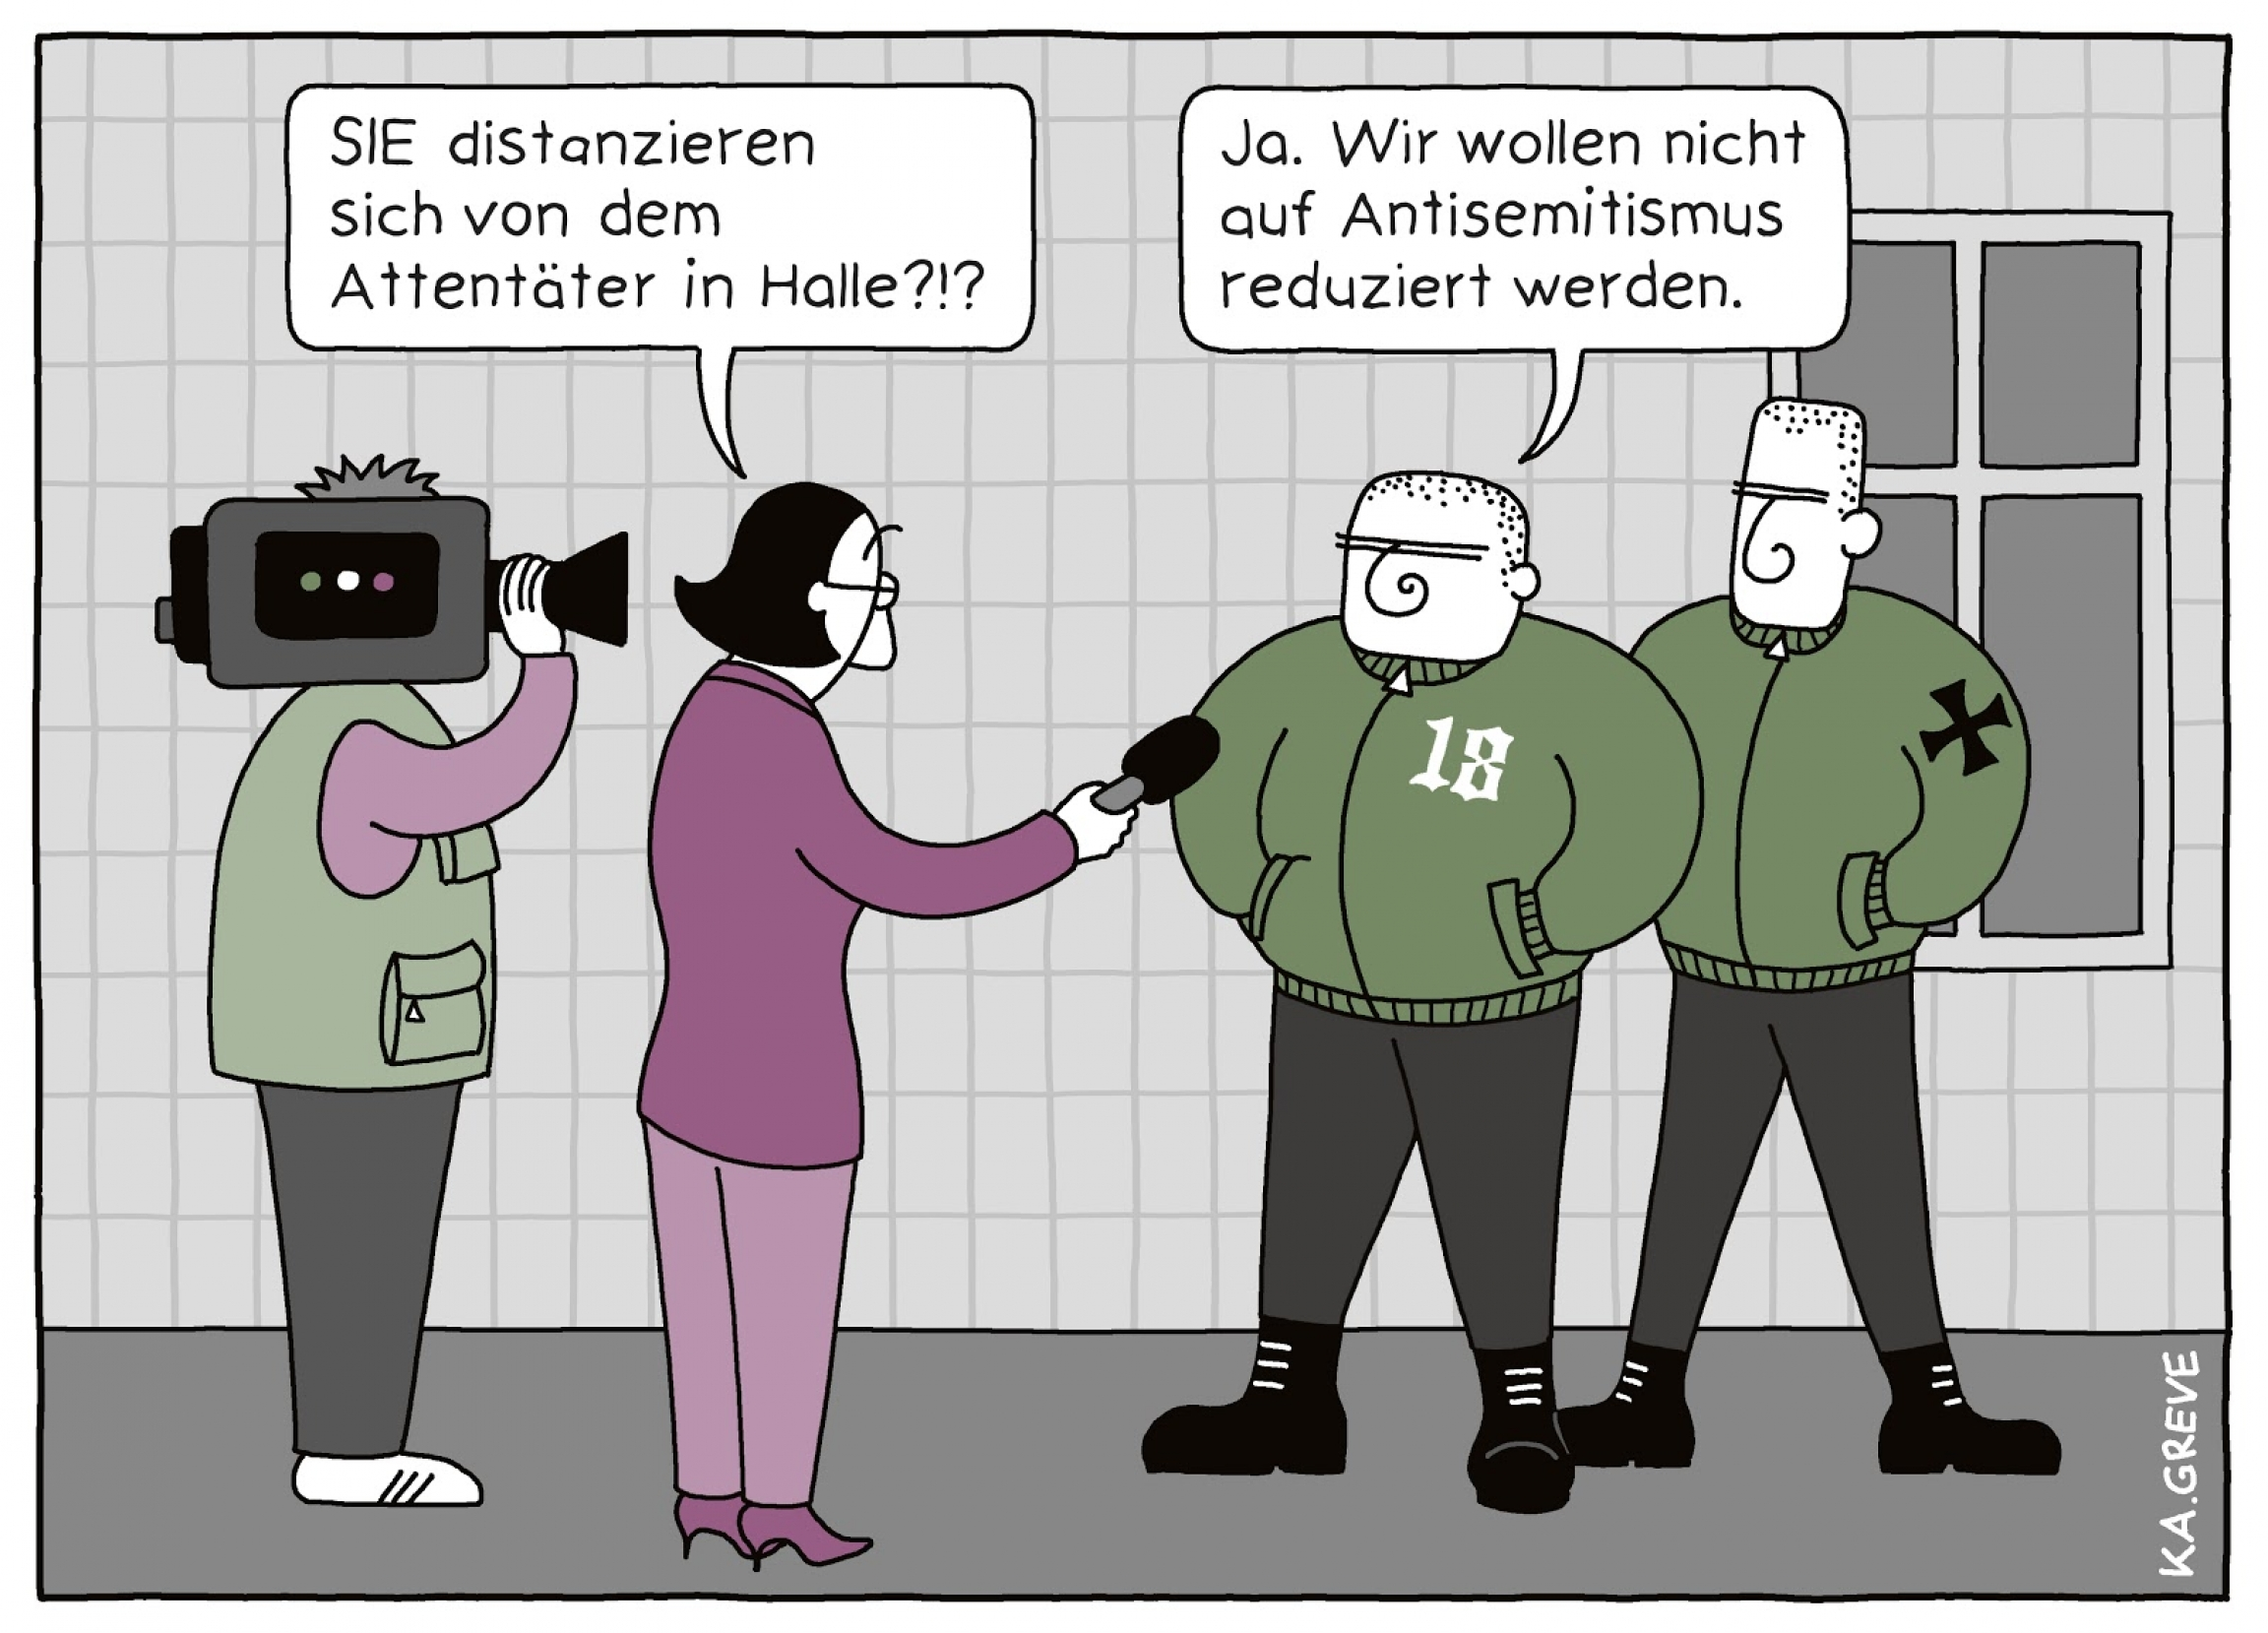 A cartoon features two media folks talk with Nazis wearing green bomber jackets